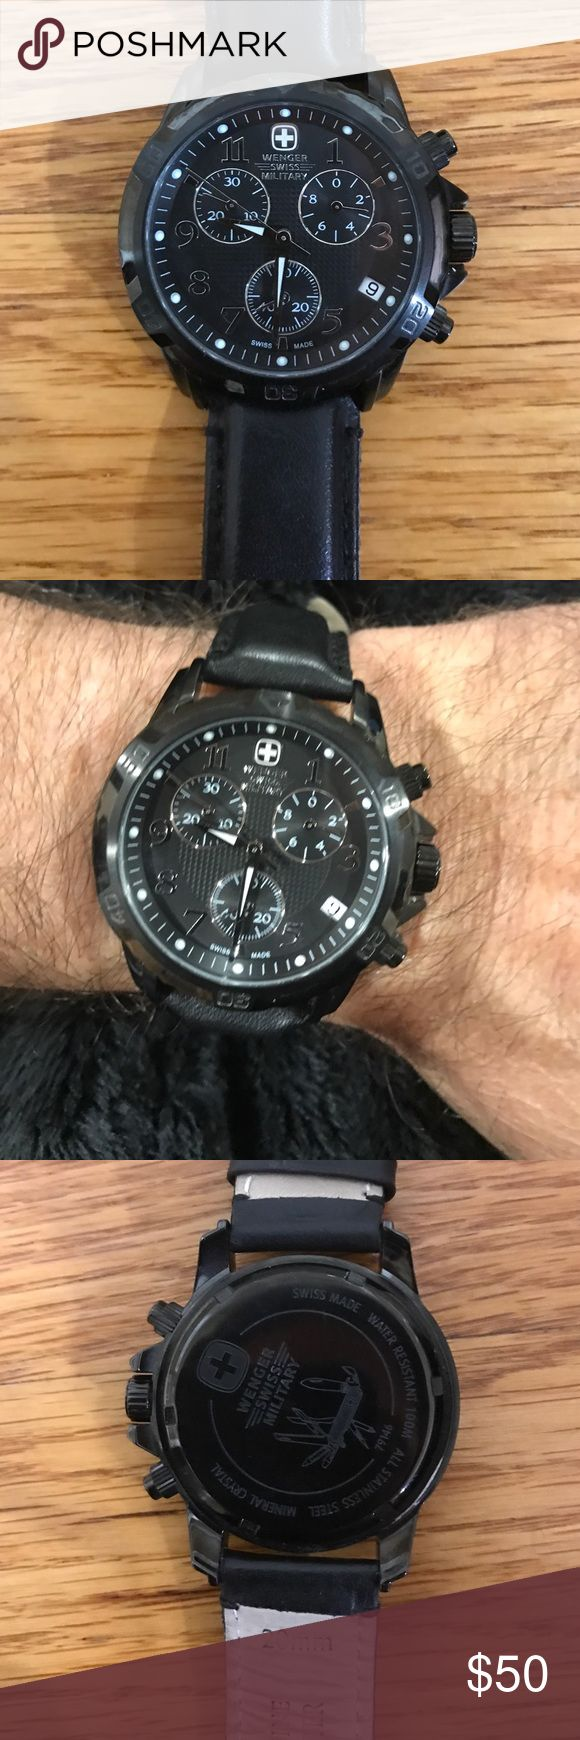 Black Wenger Swiss Military Watch Beautiful Chronograph Wenger Swiss Military watch with black leather band. Waterproof to 330 ft. Sold with original box. New watch battery needed Accessories Watches